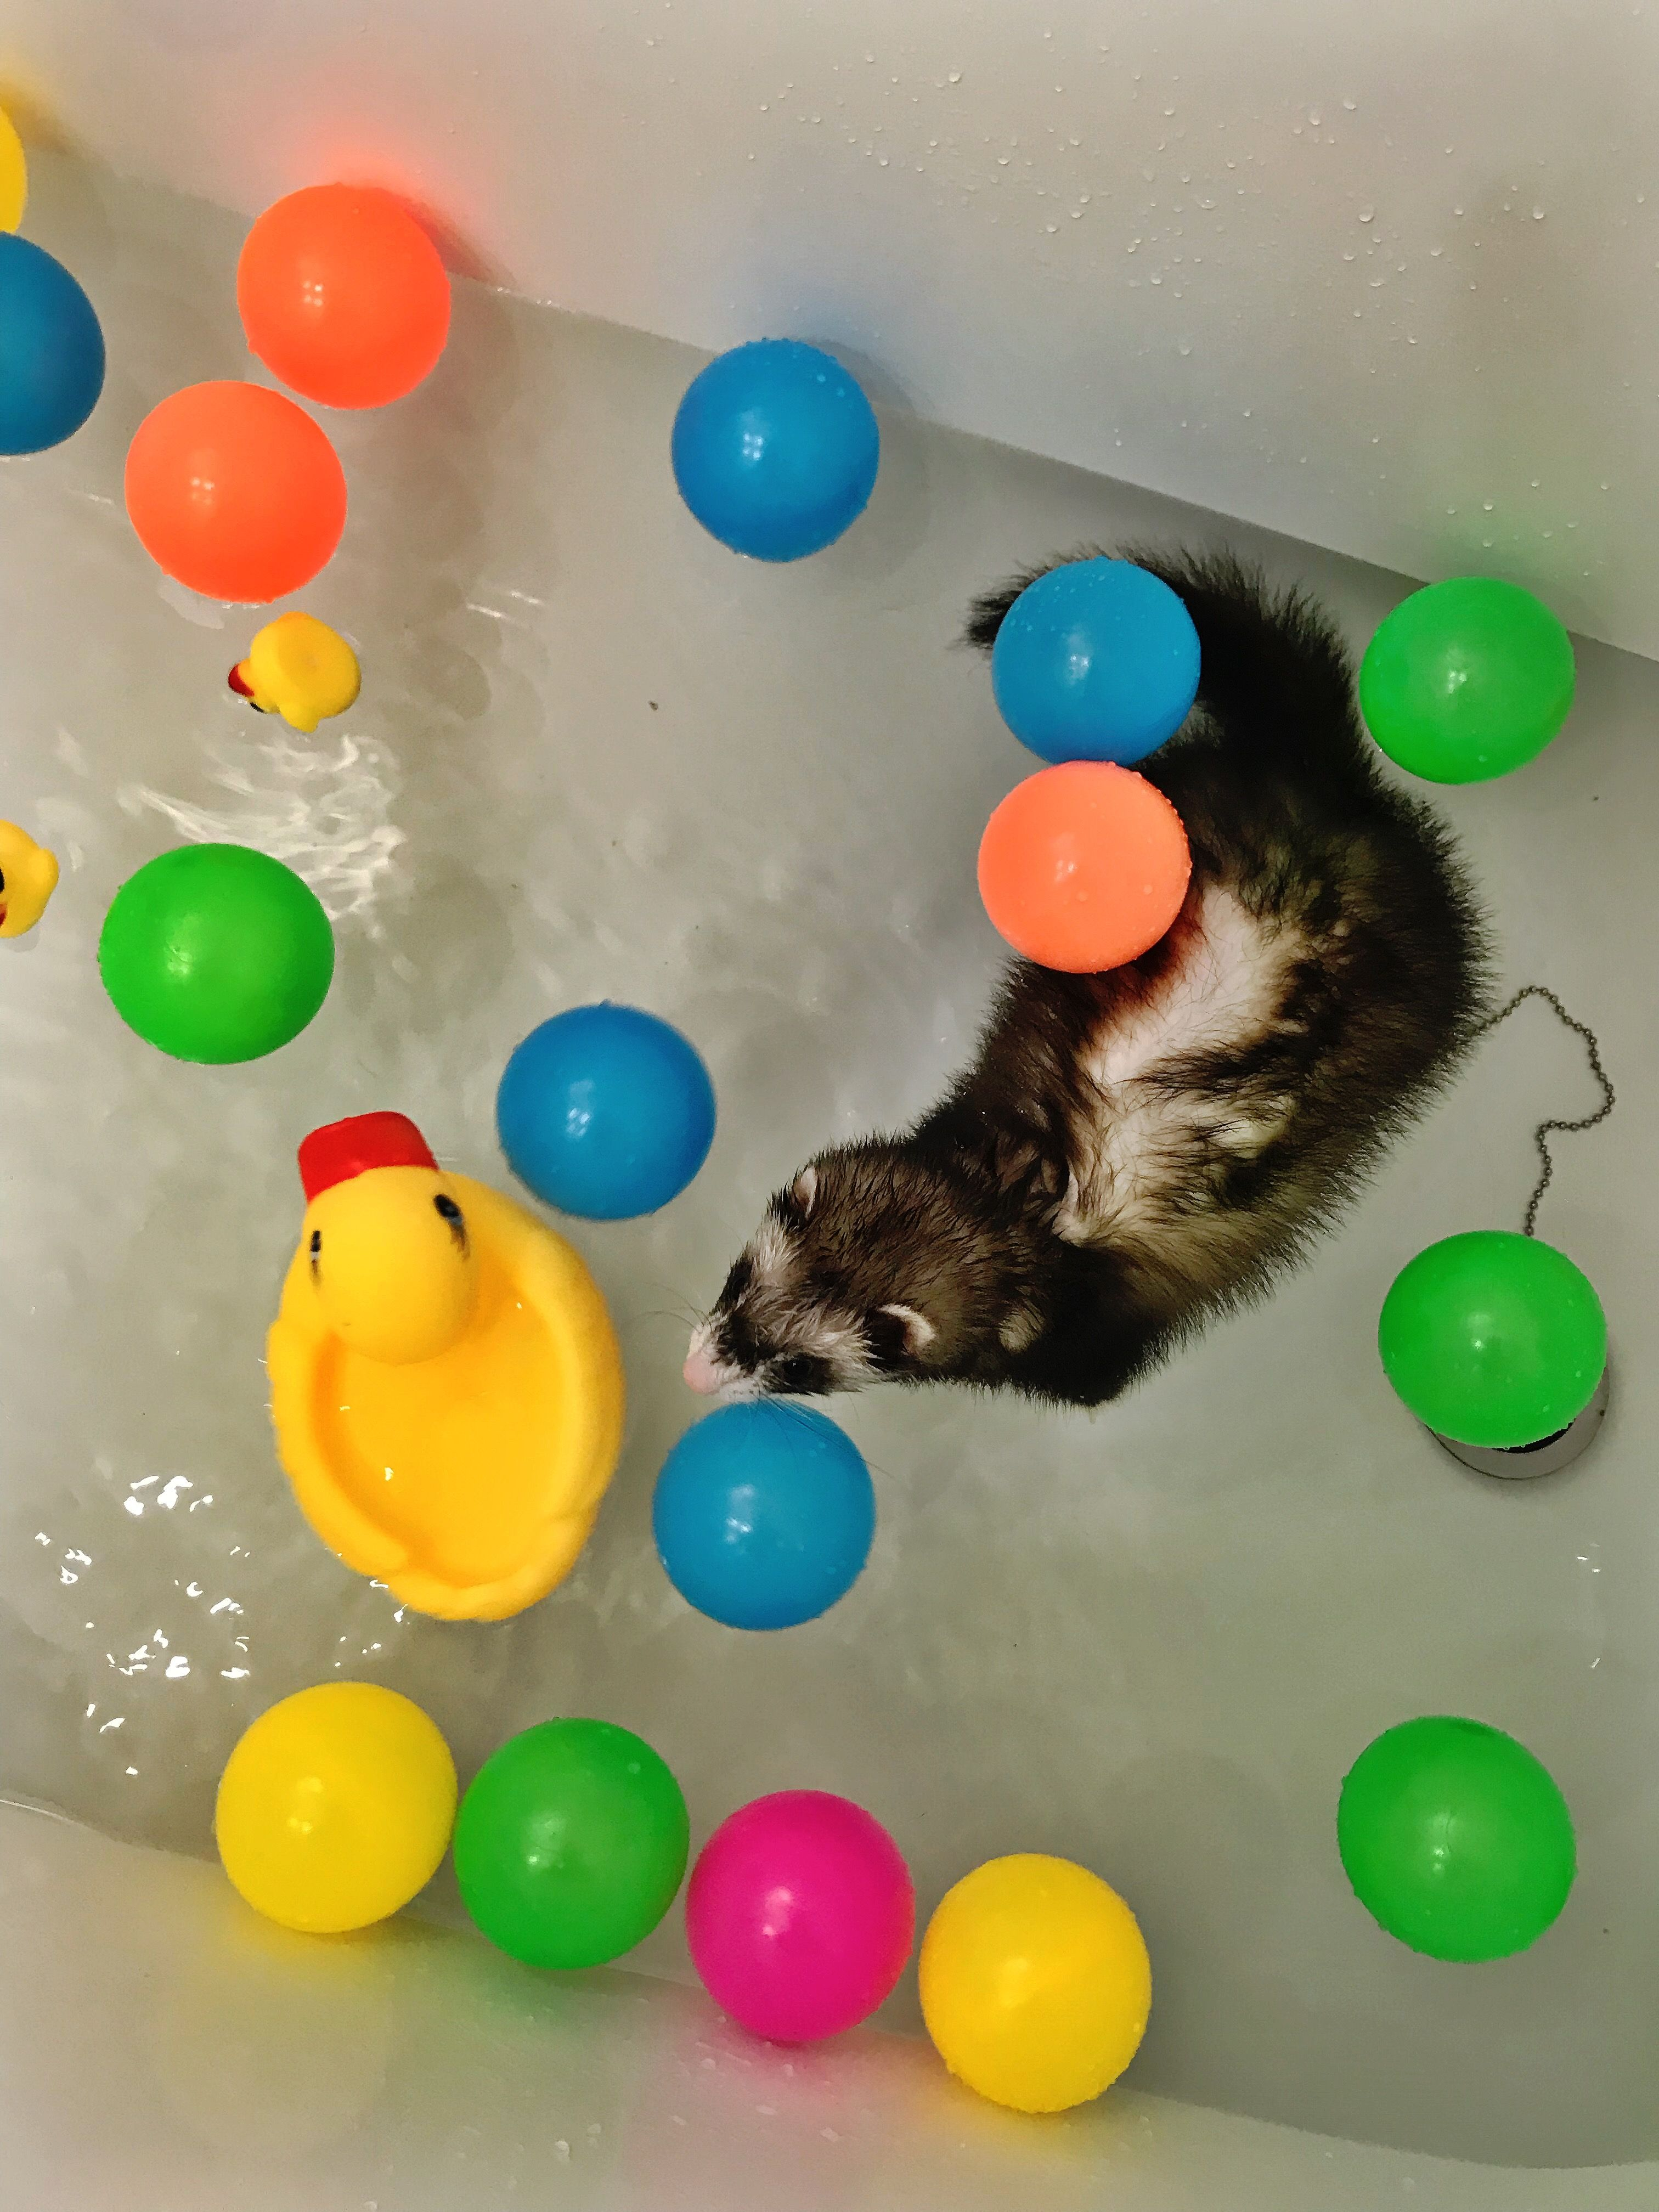 Pin By Kenna Castleberry On Future Adventures Dog Pictures Cute Animals Ferret